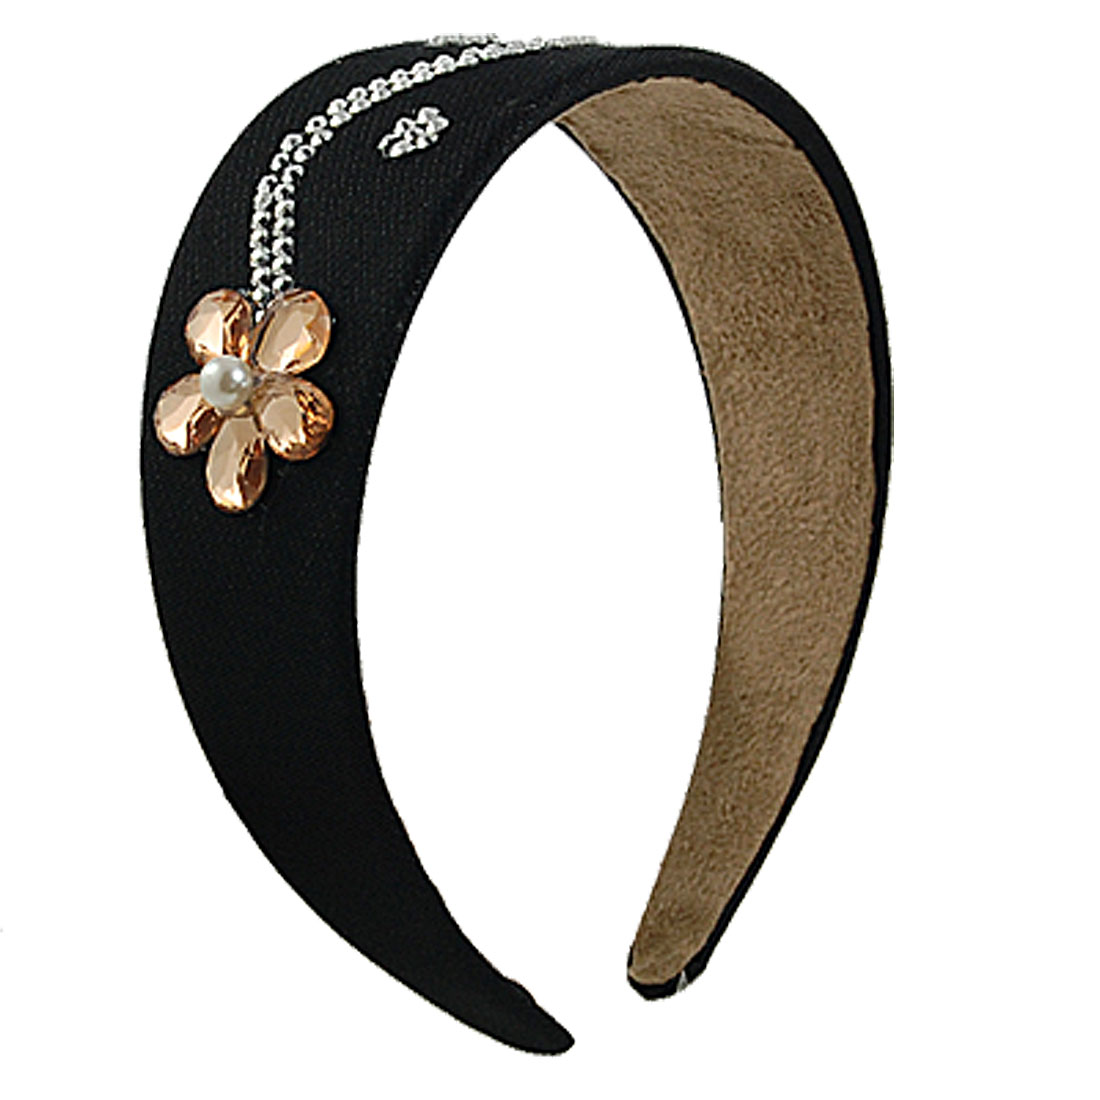 Rhinestone Decor Farbic Plastic Headband Hair Hoop Black for Women